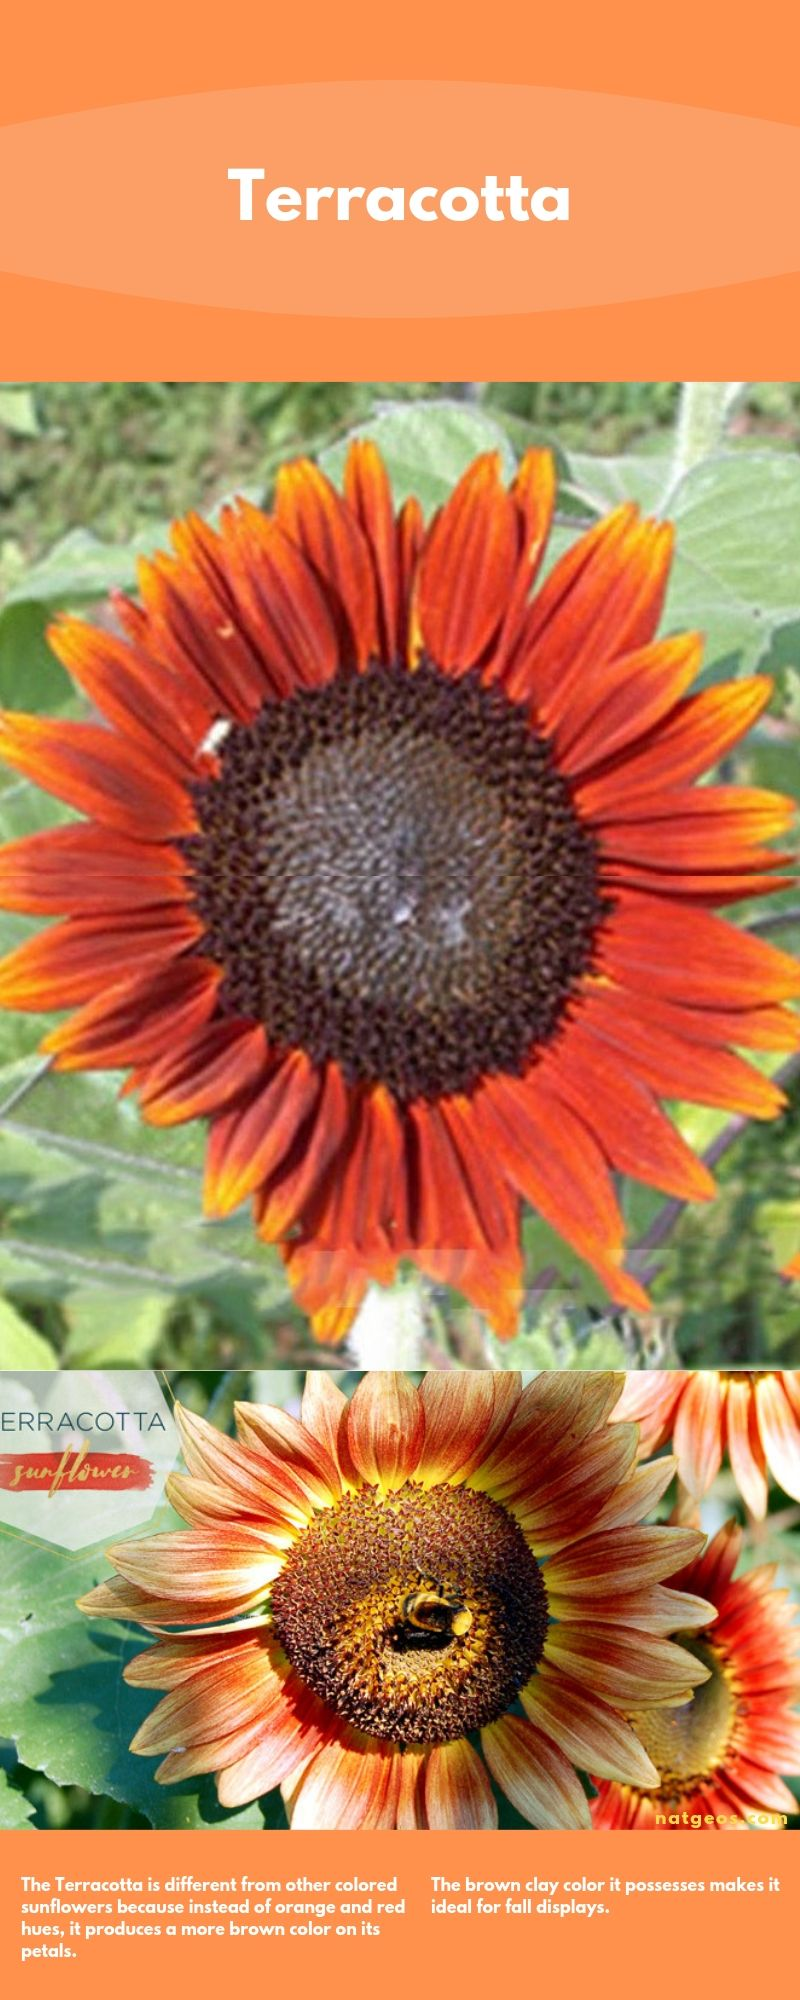 Types of Sunflowers; Terracotta